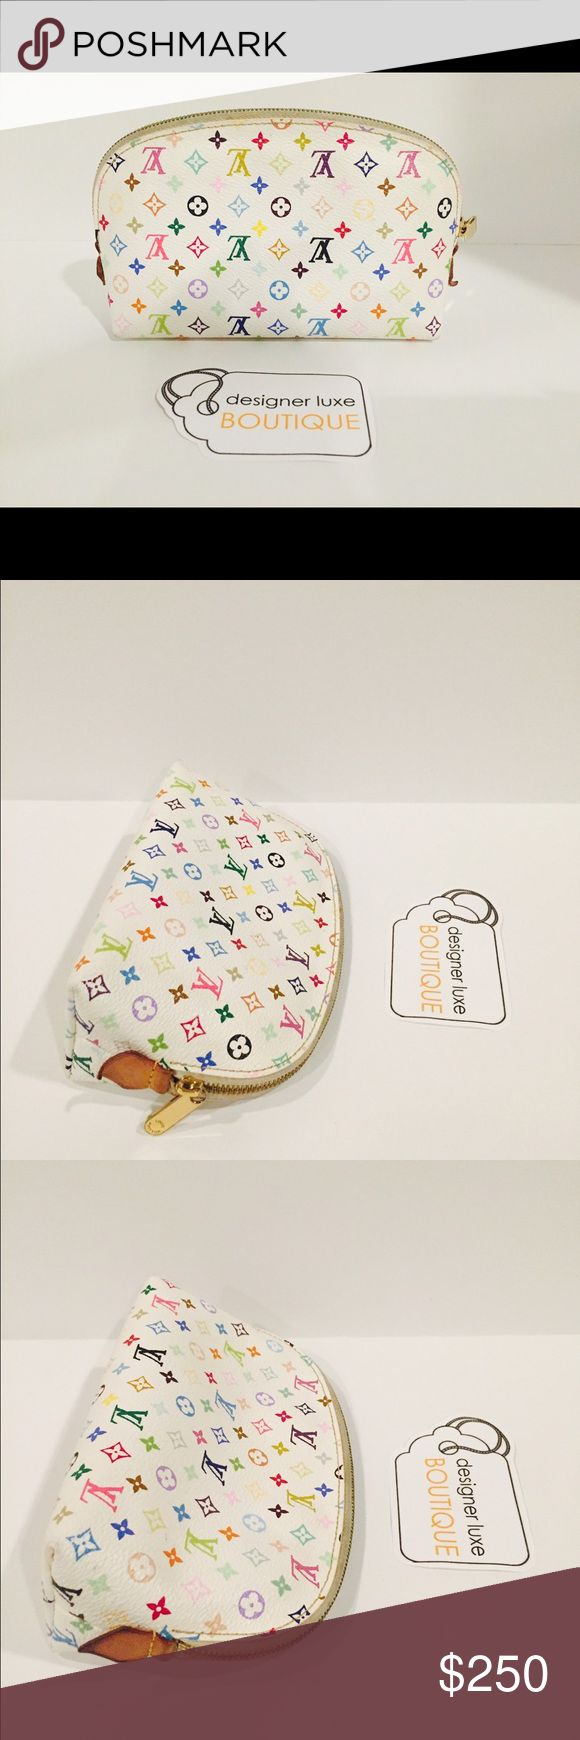 Authentic Louis Vuitton Multicolor Cosmetic Pouch. Louis Vuitton Multicolor Cosmetic Pouch. Inside shows wear. No peeling. Price is firm! No offers, no trades, selling only. Louis Vuitton Bags Cosmetic Bags & Cases